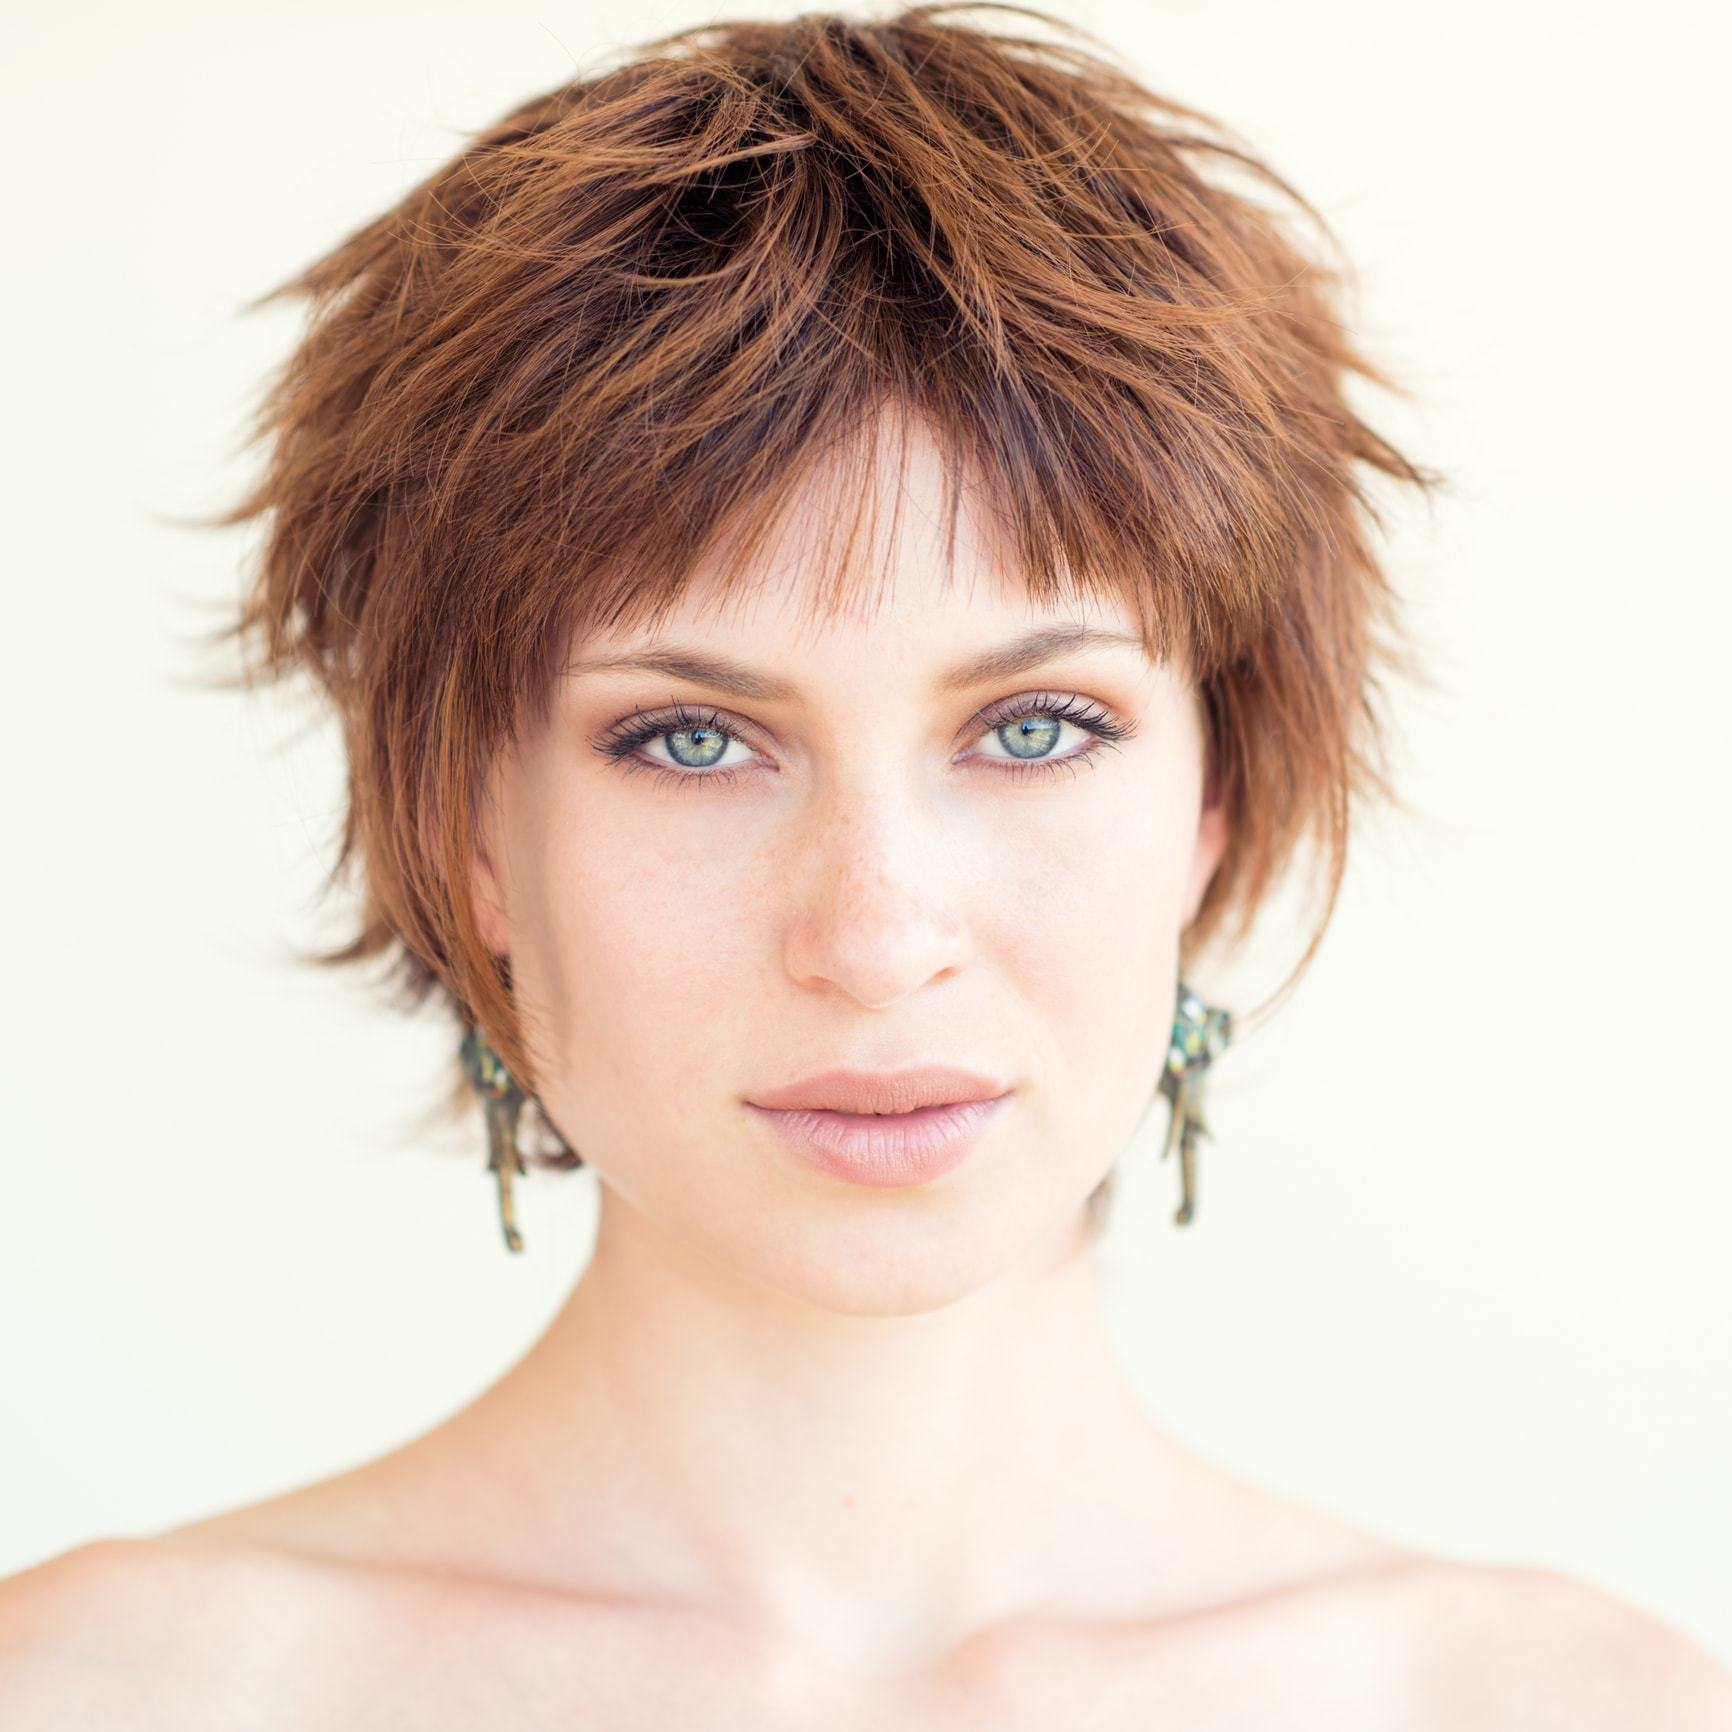 With faces bangs for hairstyles short oval 20 Perfect